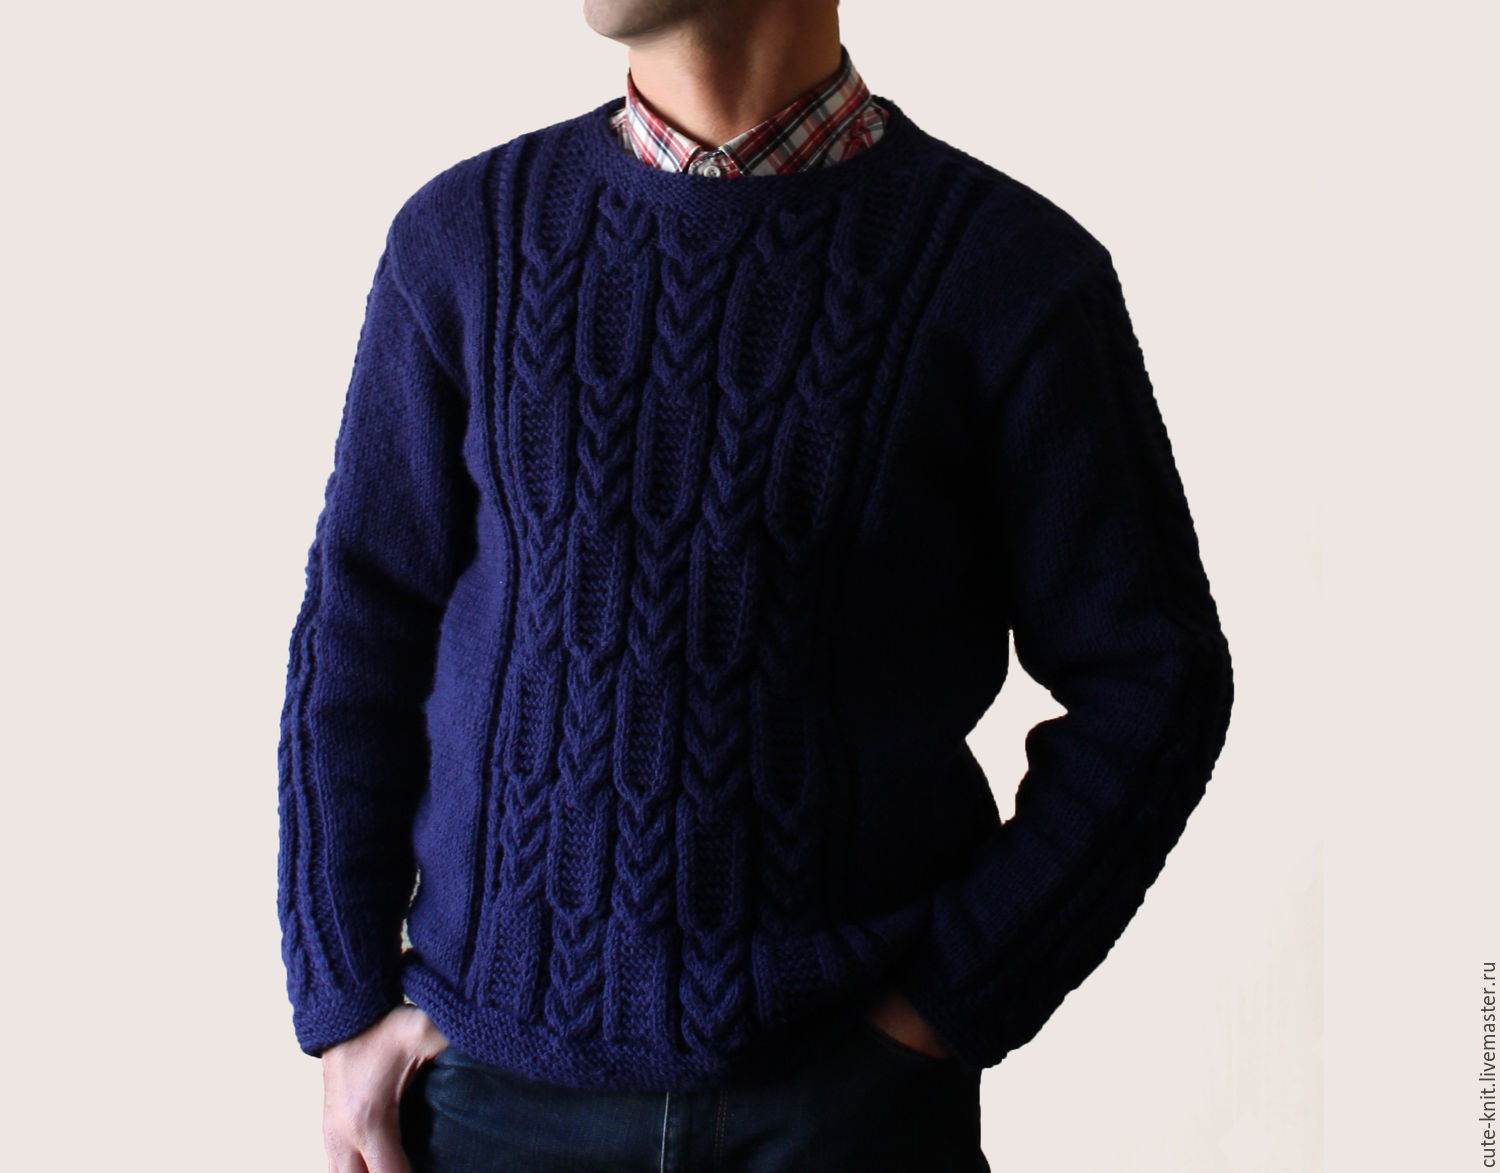 Men\u0027s sweater blue with embossed pattern. To better visualize the  model, click on the photo. CUTE,KNIT NAT Onipchenko